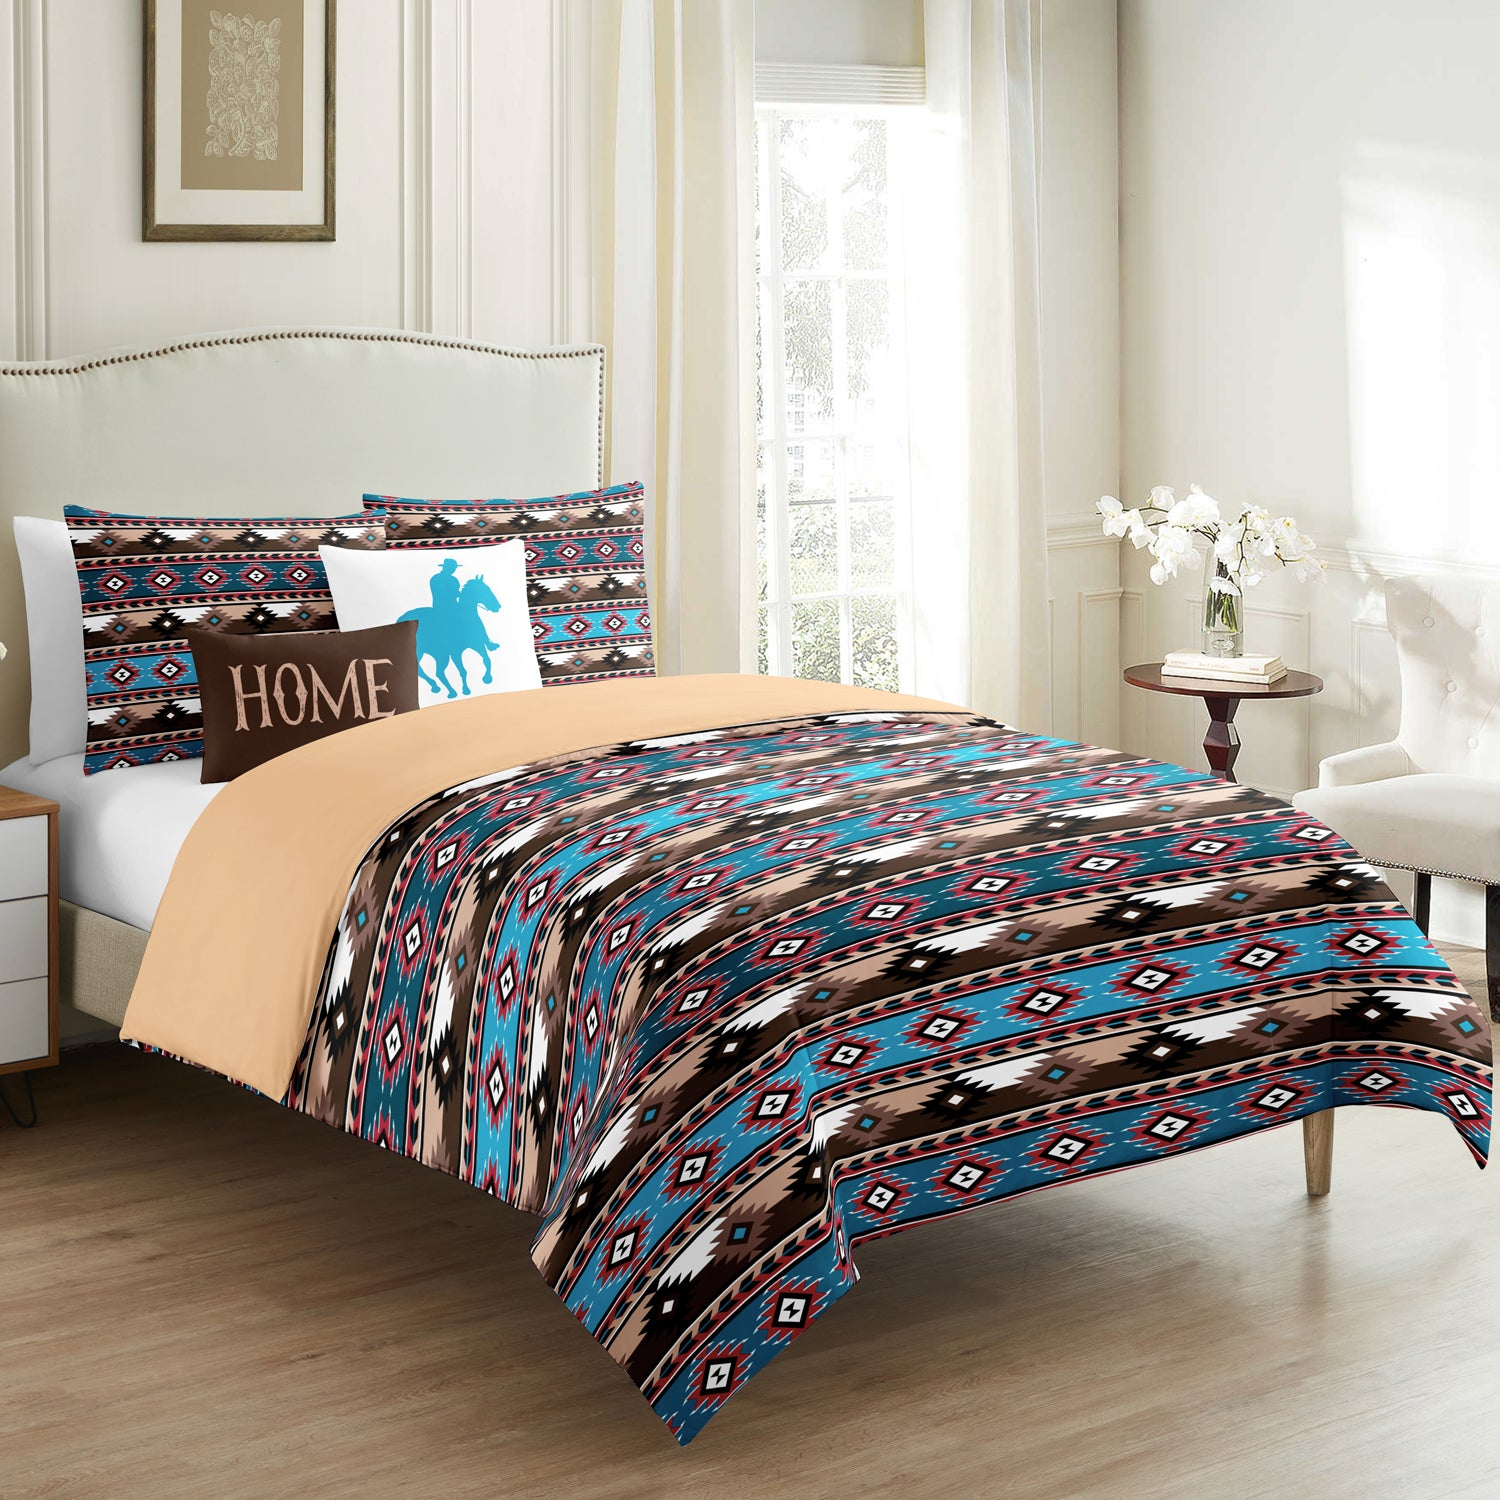 Flame Stitch Duvet Cover 5 Pieces - Merrylife